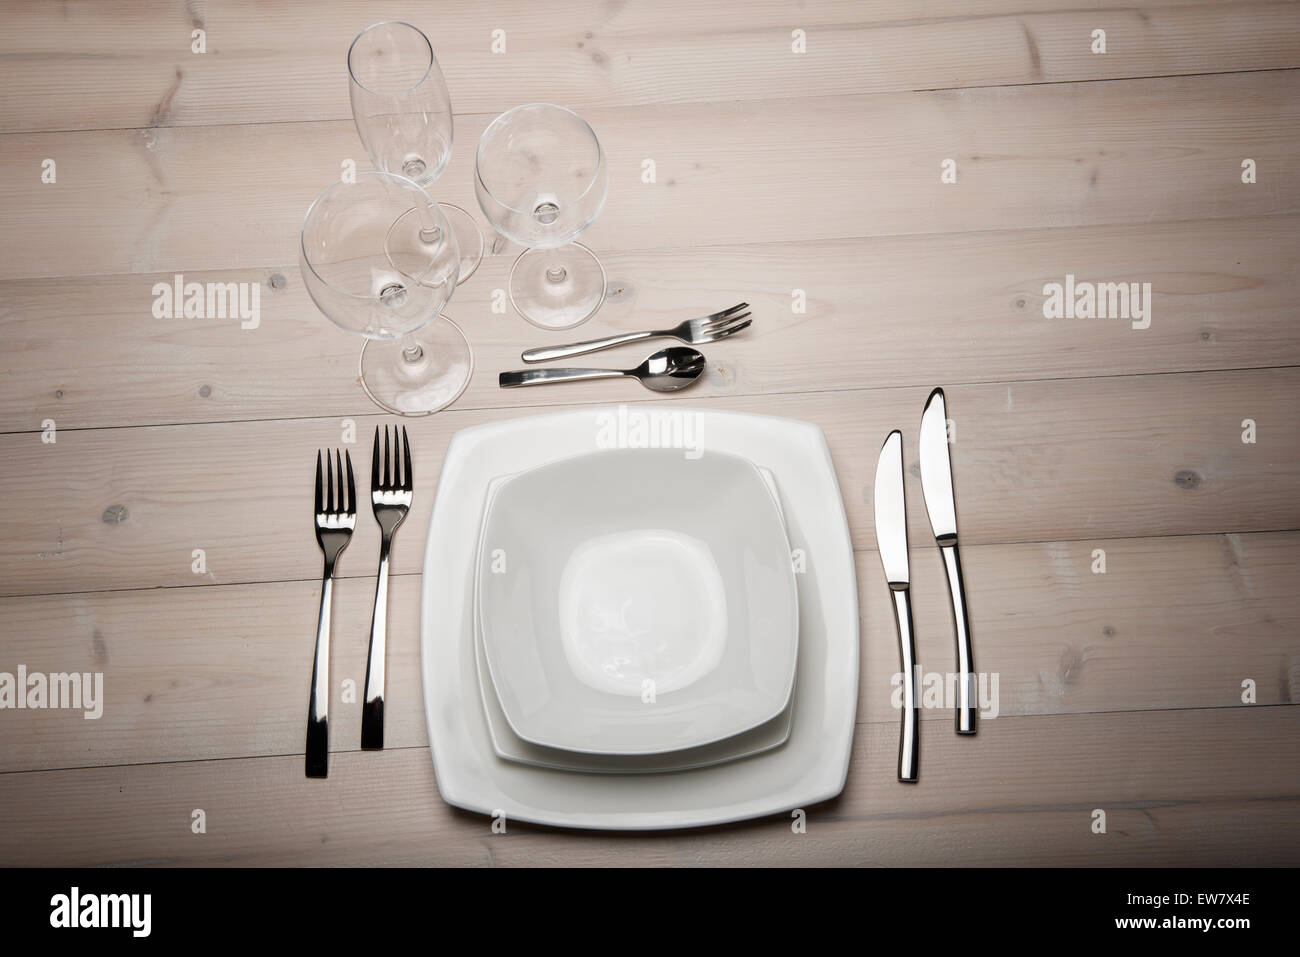 table set with plates, cutlery and glasses on wooden table - Stock Image